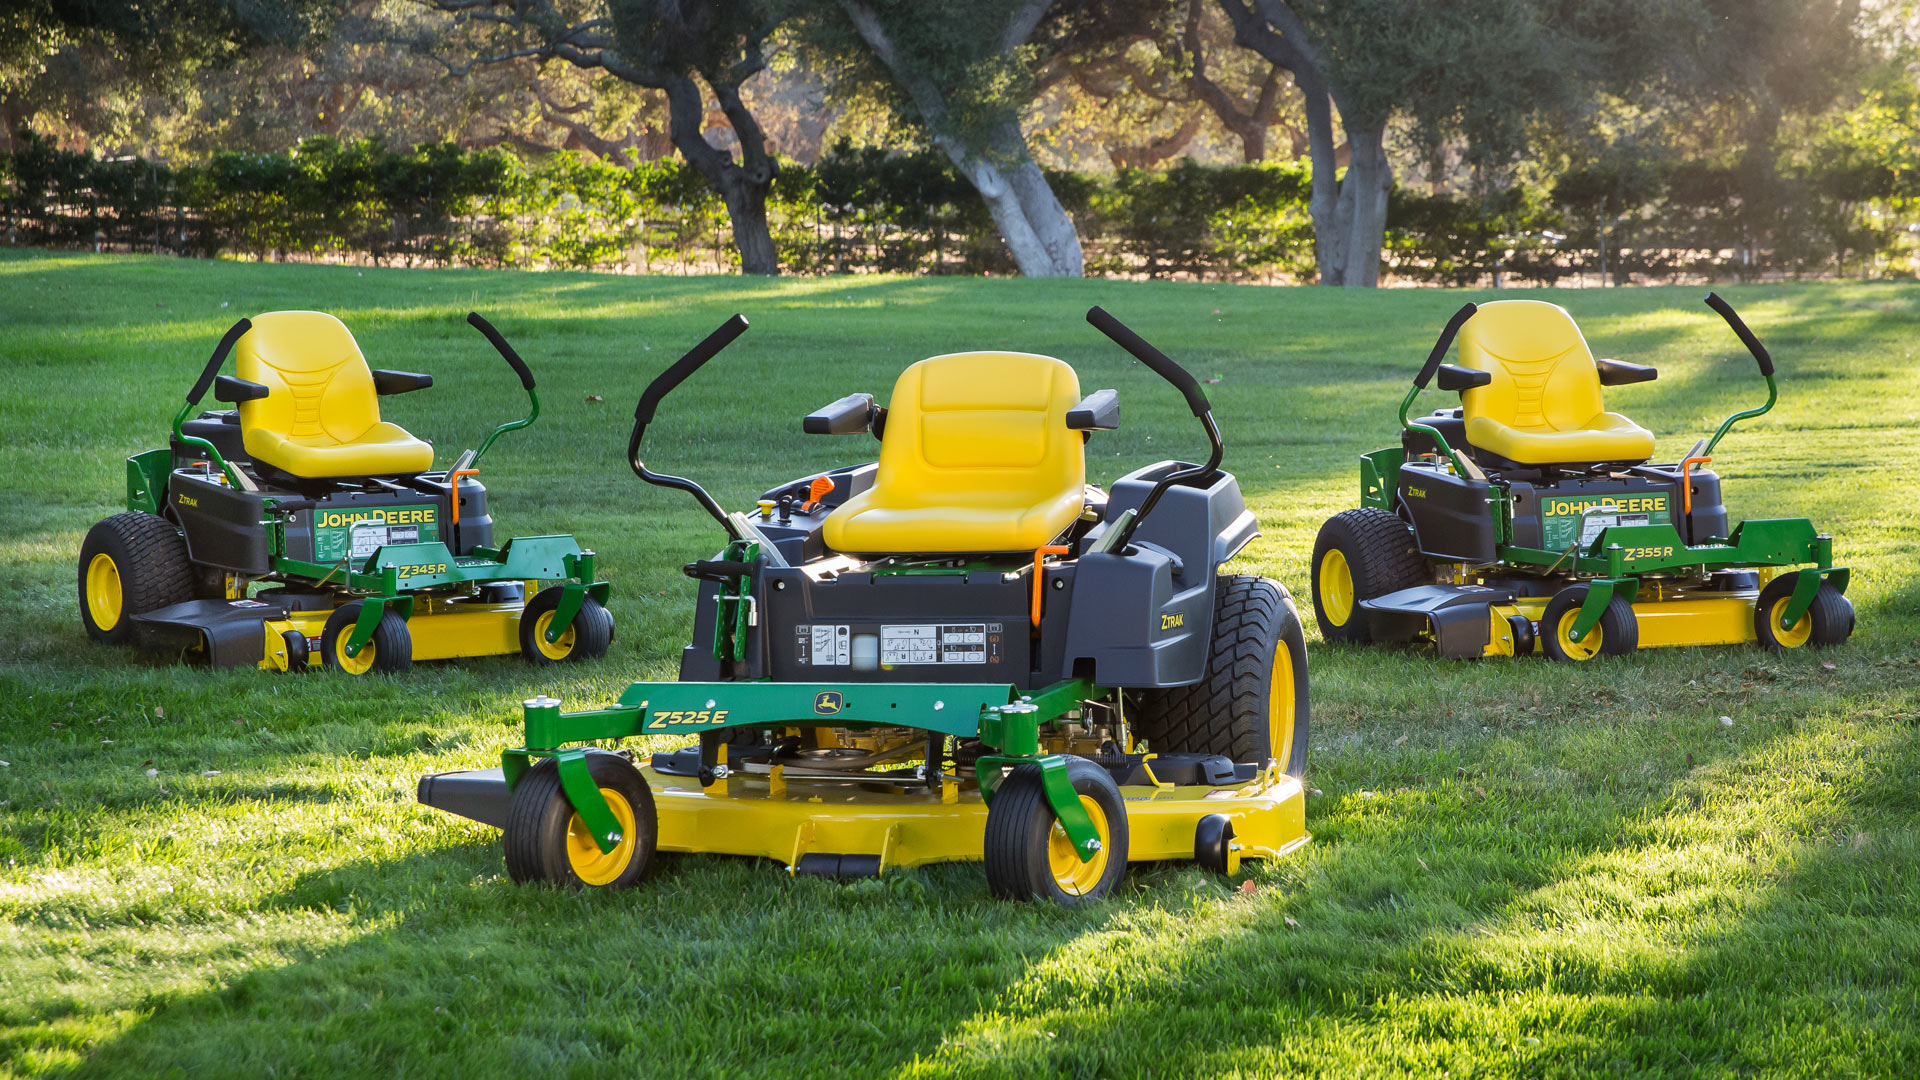 Photo of zero turn mower family on lawn